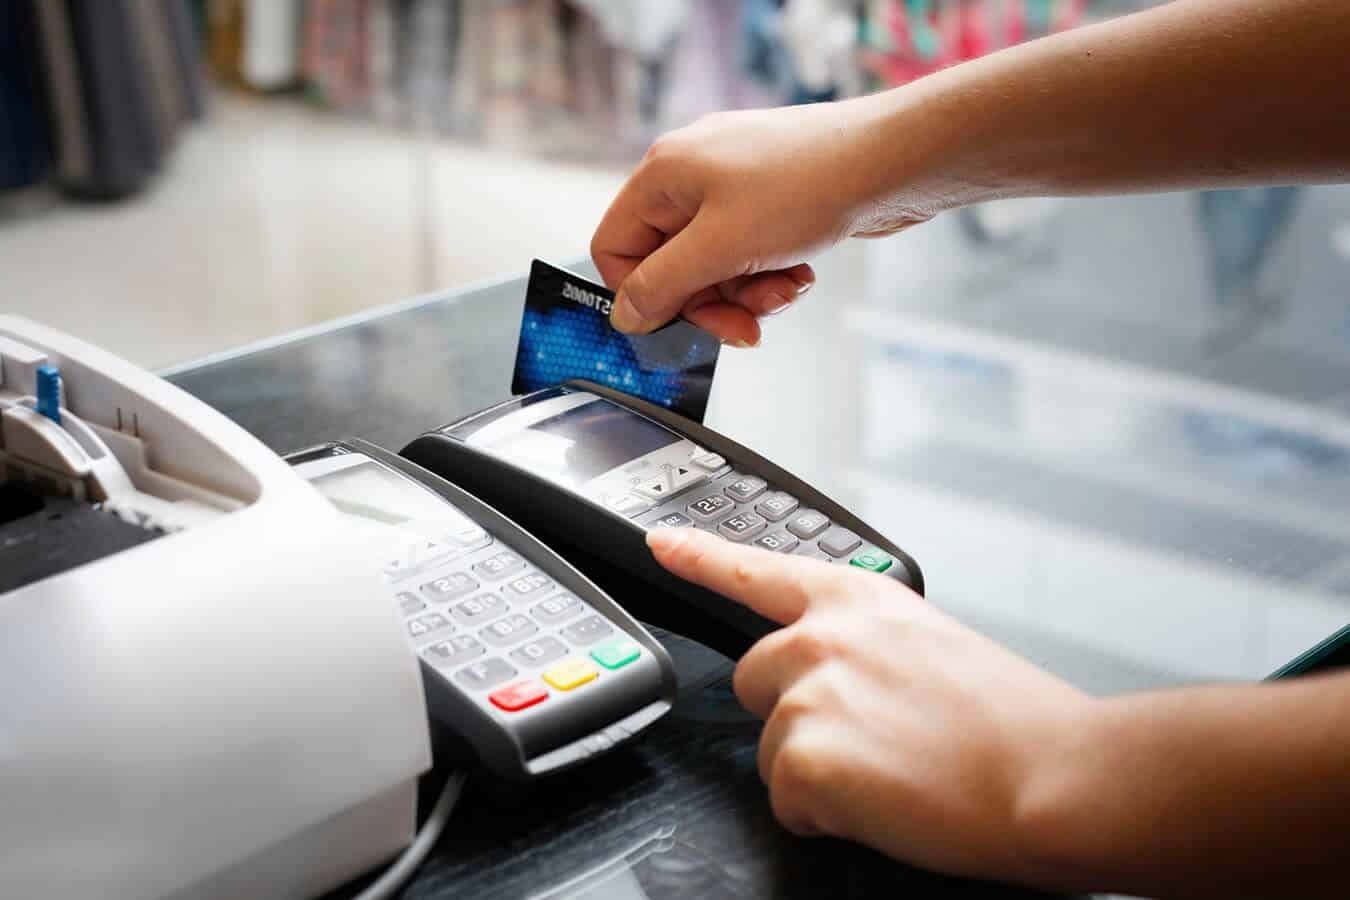 Card skimming will increase in 2017